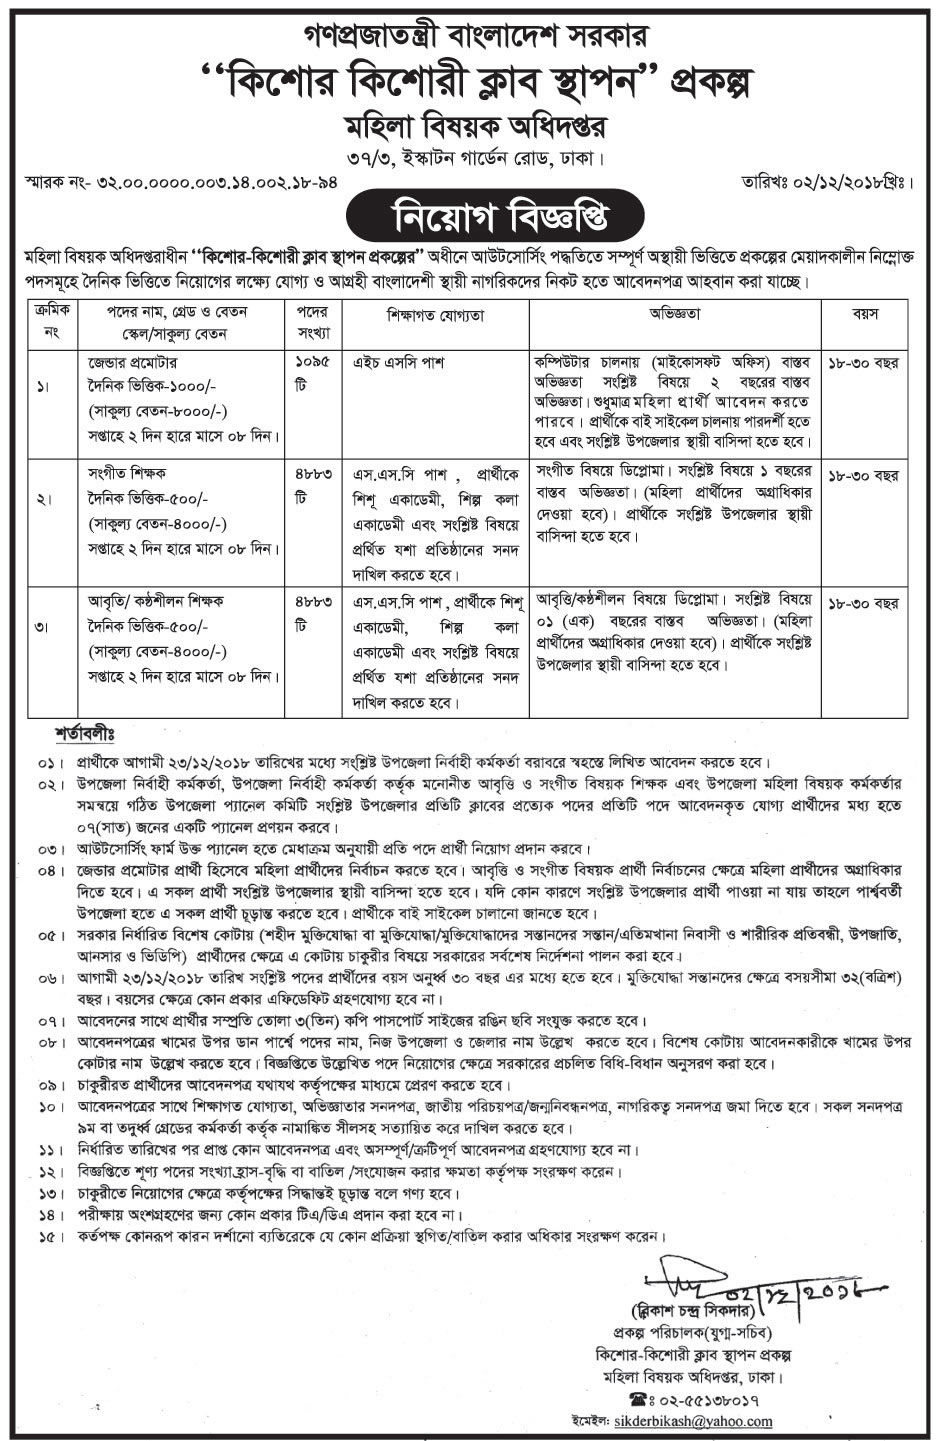 Department of Women Affairs Teenage Girls Club Recruitment Circular 2018